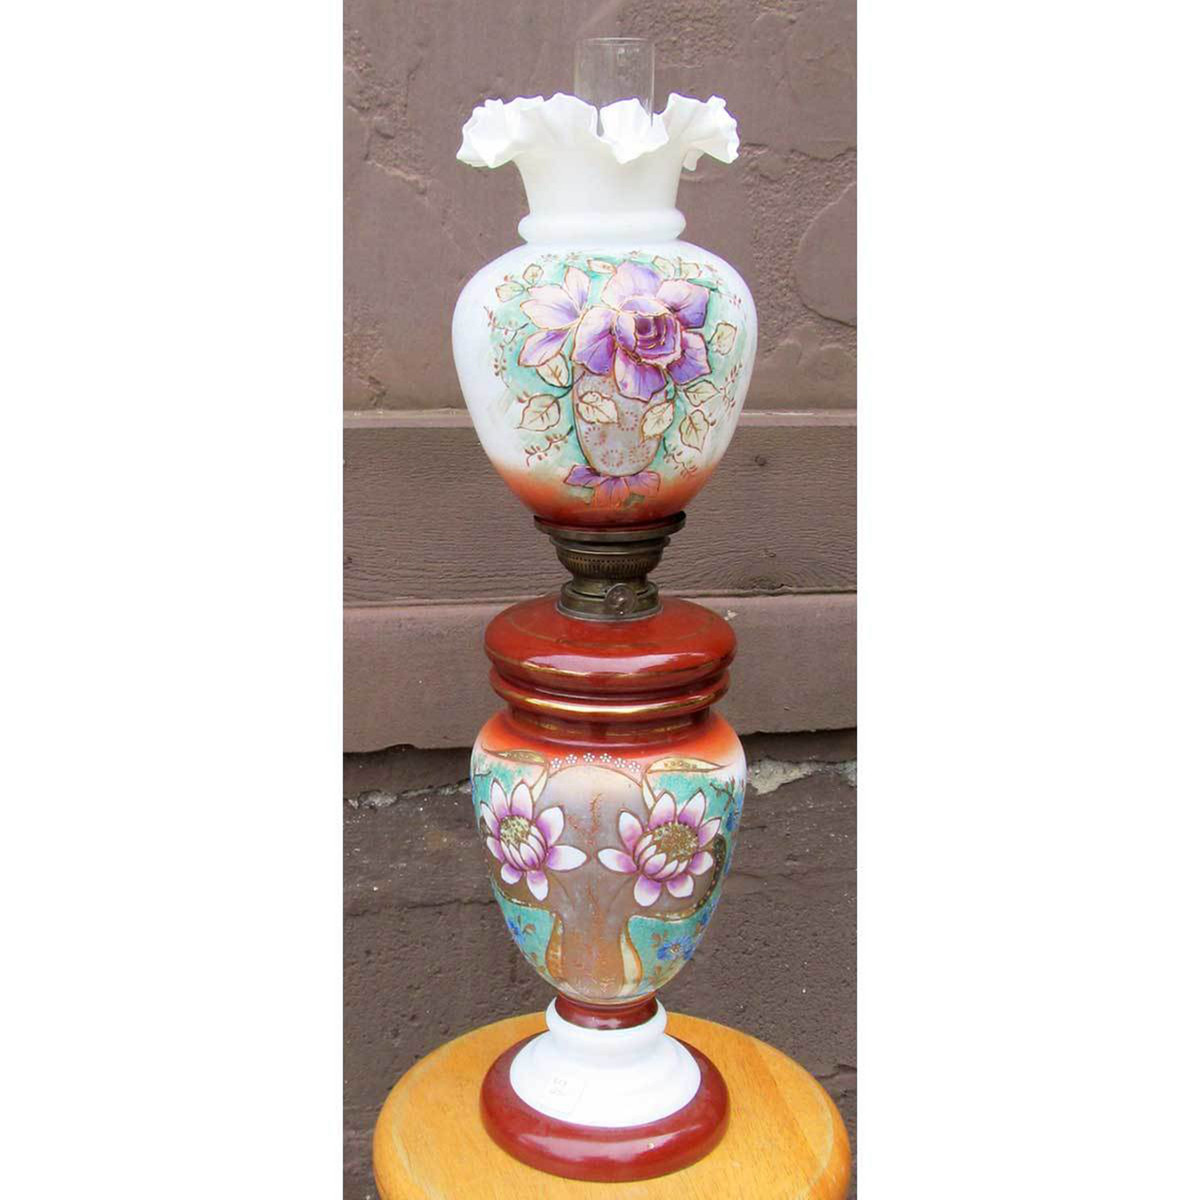 L13250 - Antique Painted and Fired Milk Glass Kerosene Table Lamp